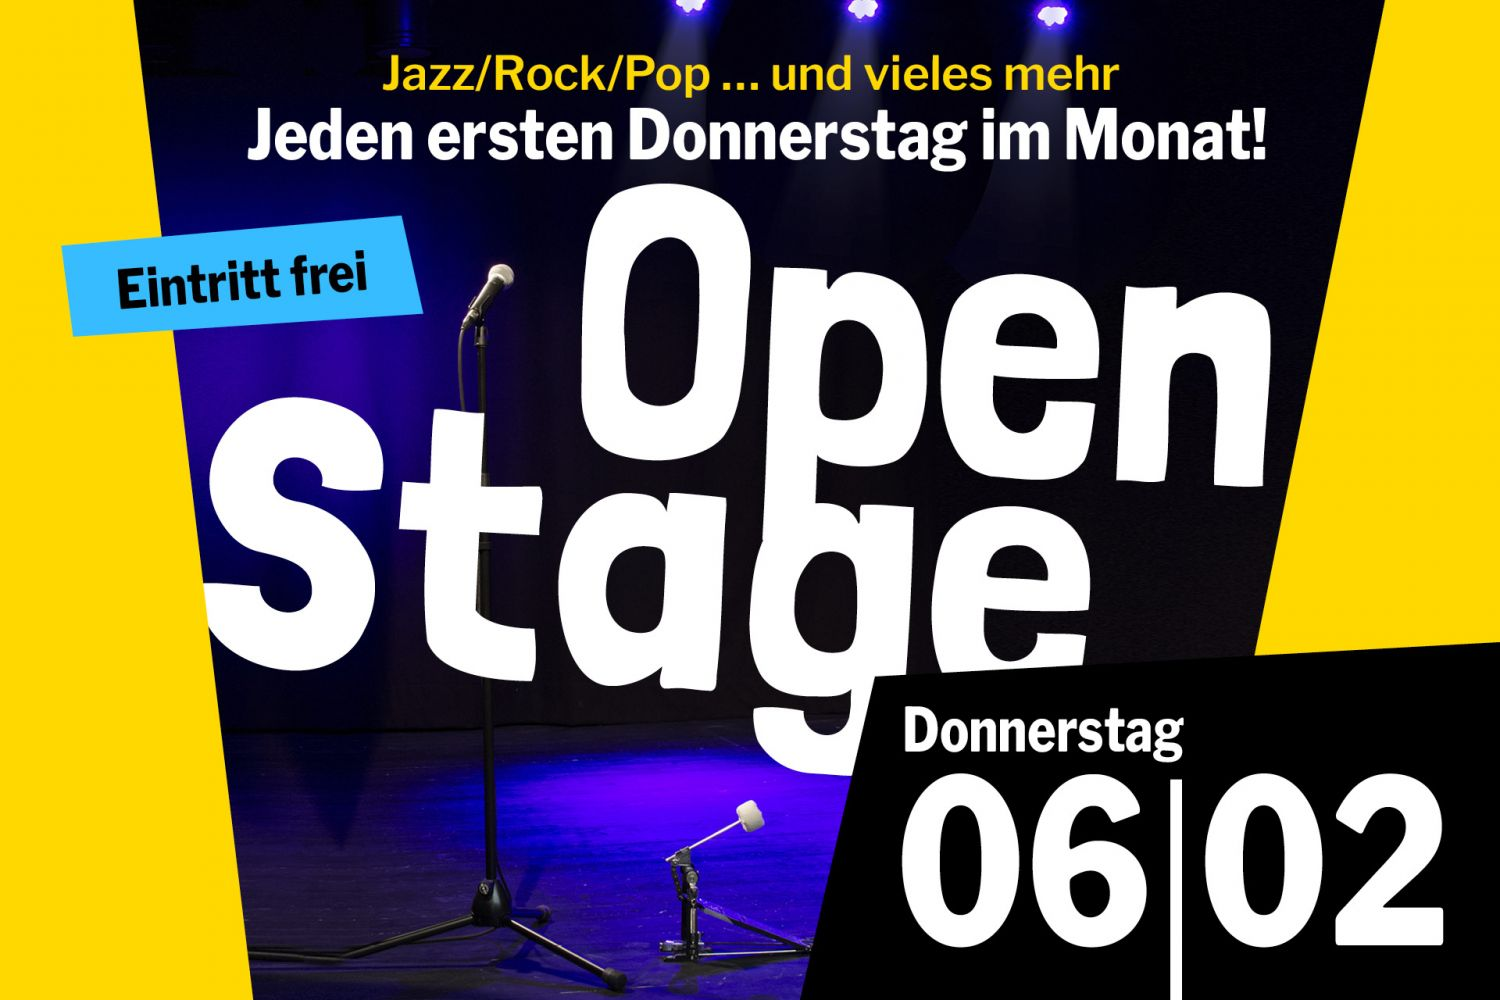 OPEN STAGE # 61 (Donnerstag, 06.02.2020)